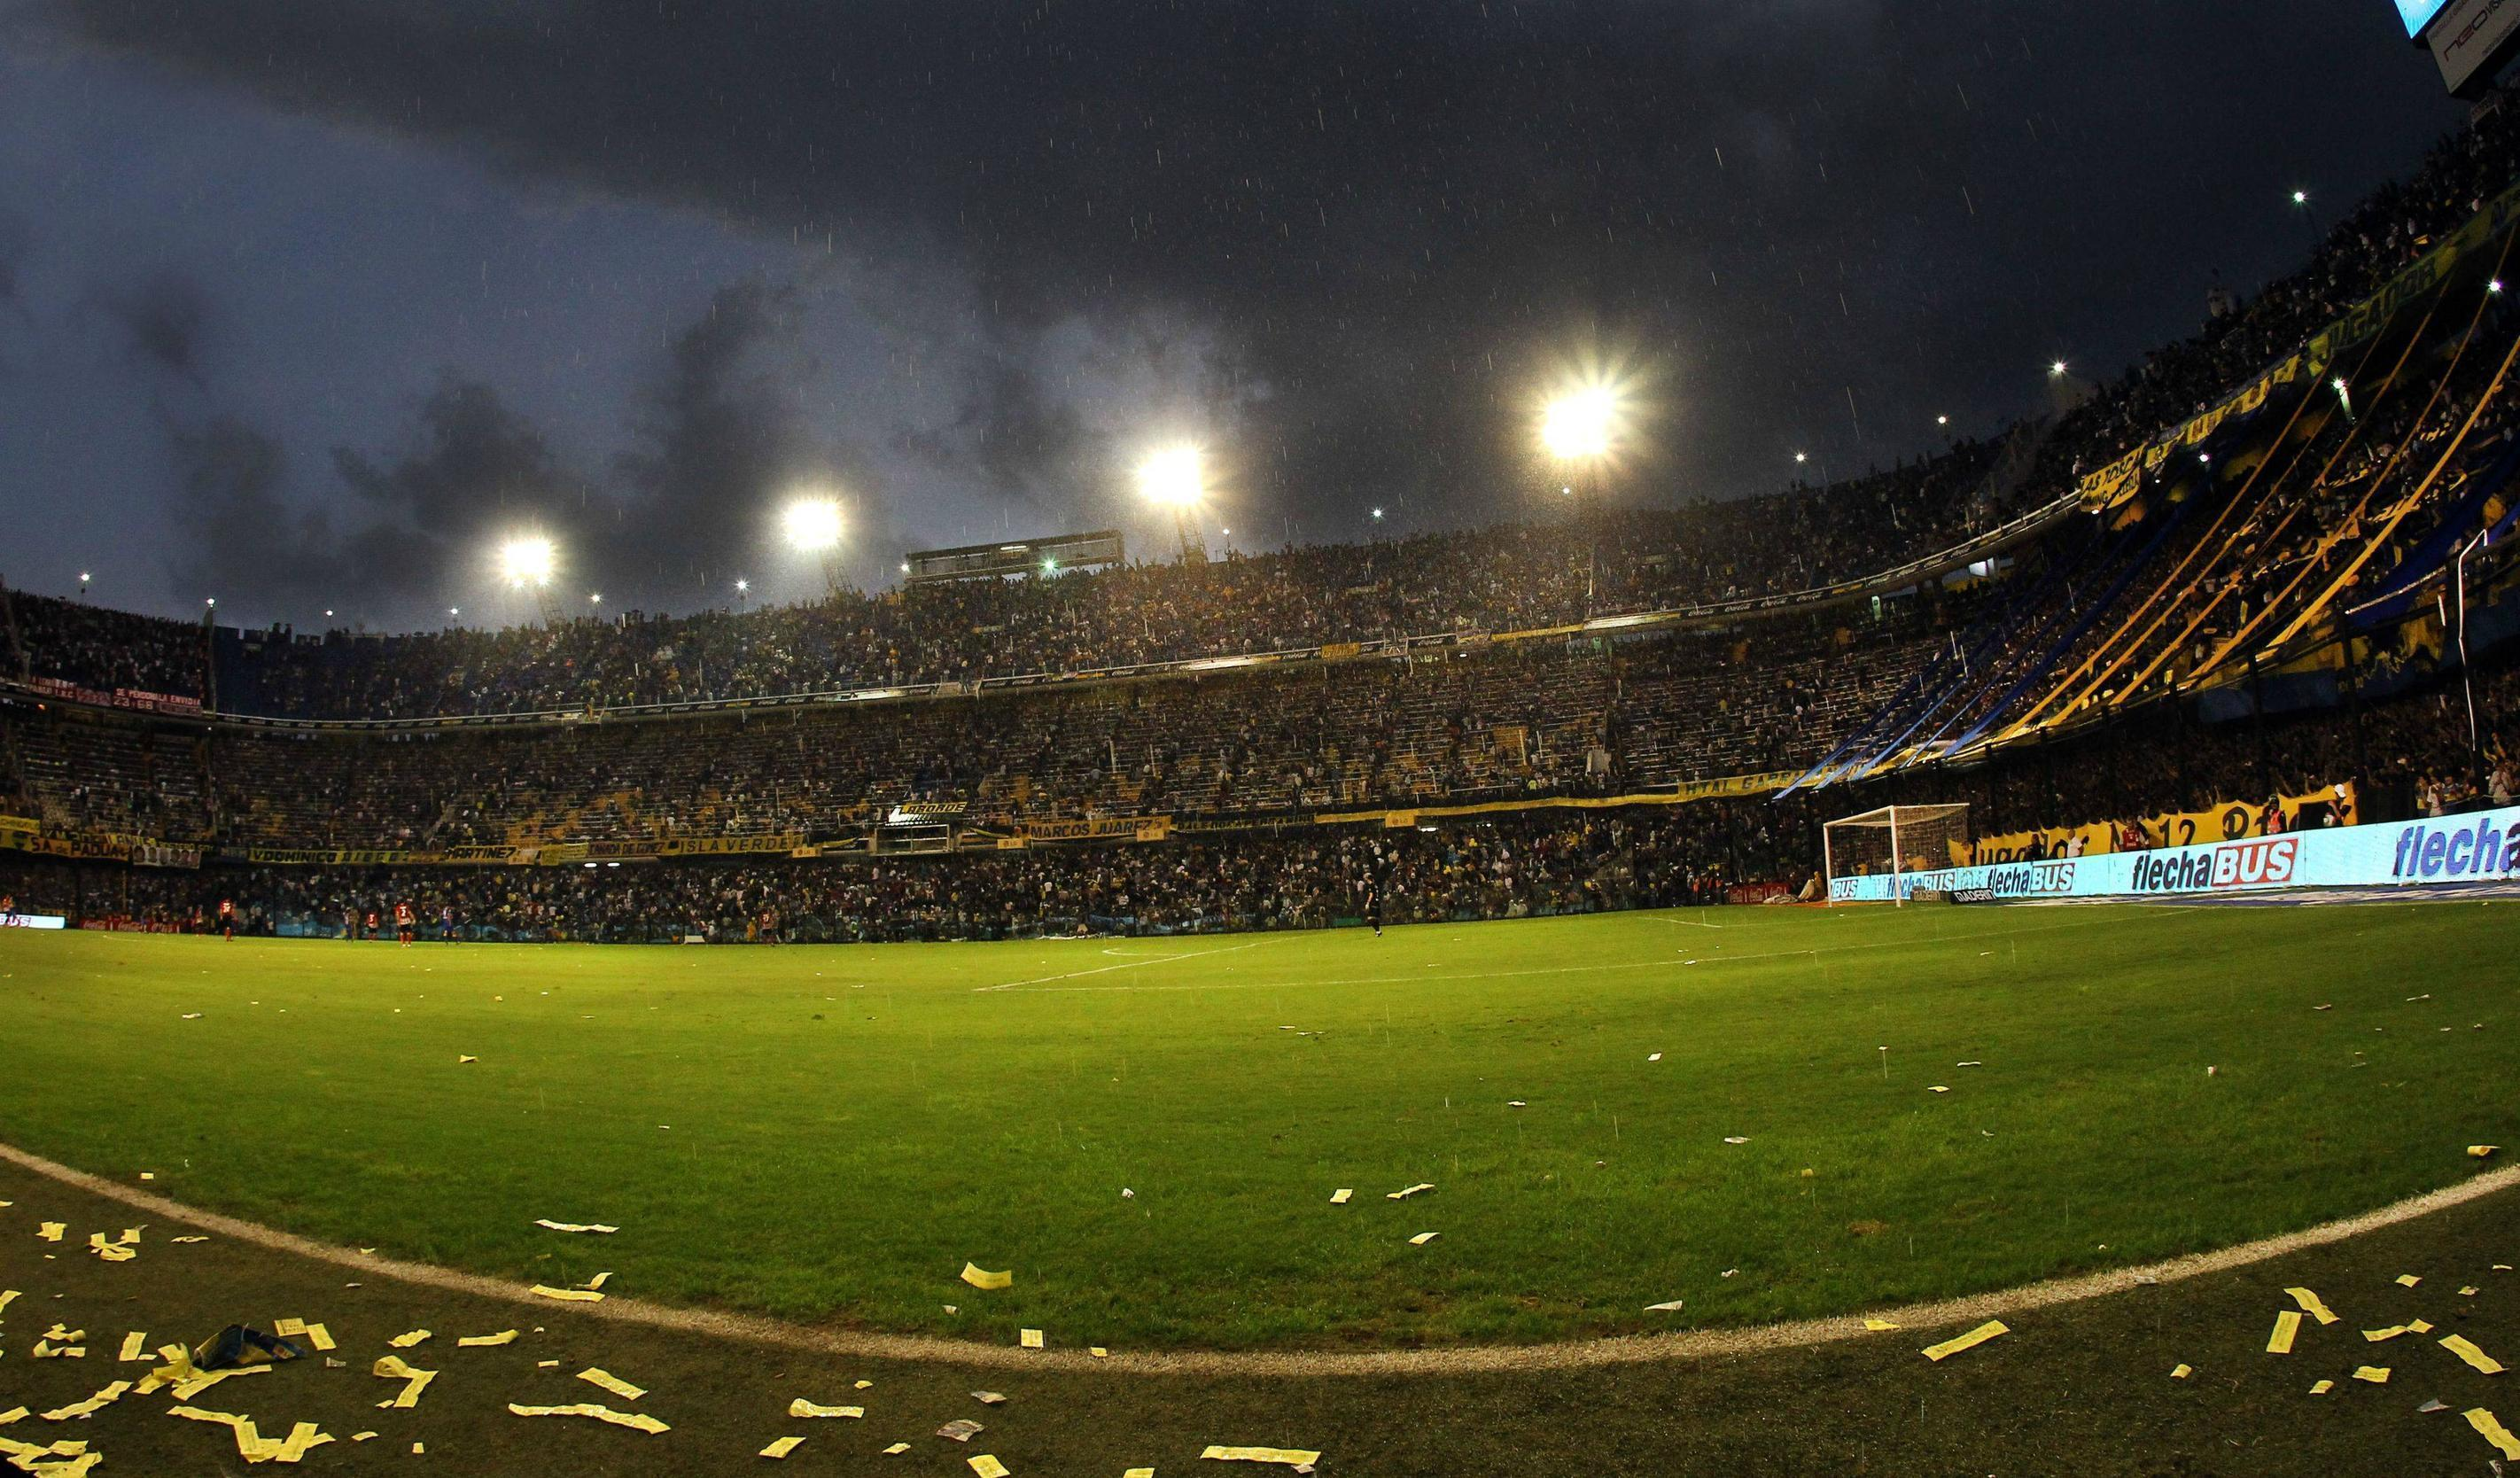 Boca Juniors la 12 Wallpapers images | Boca Juniors | Pinterest ...